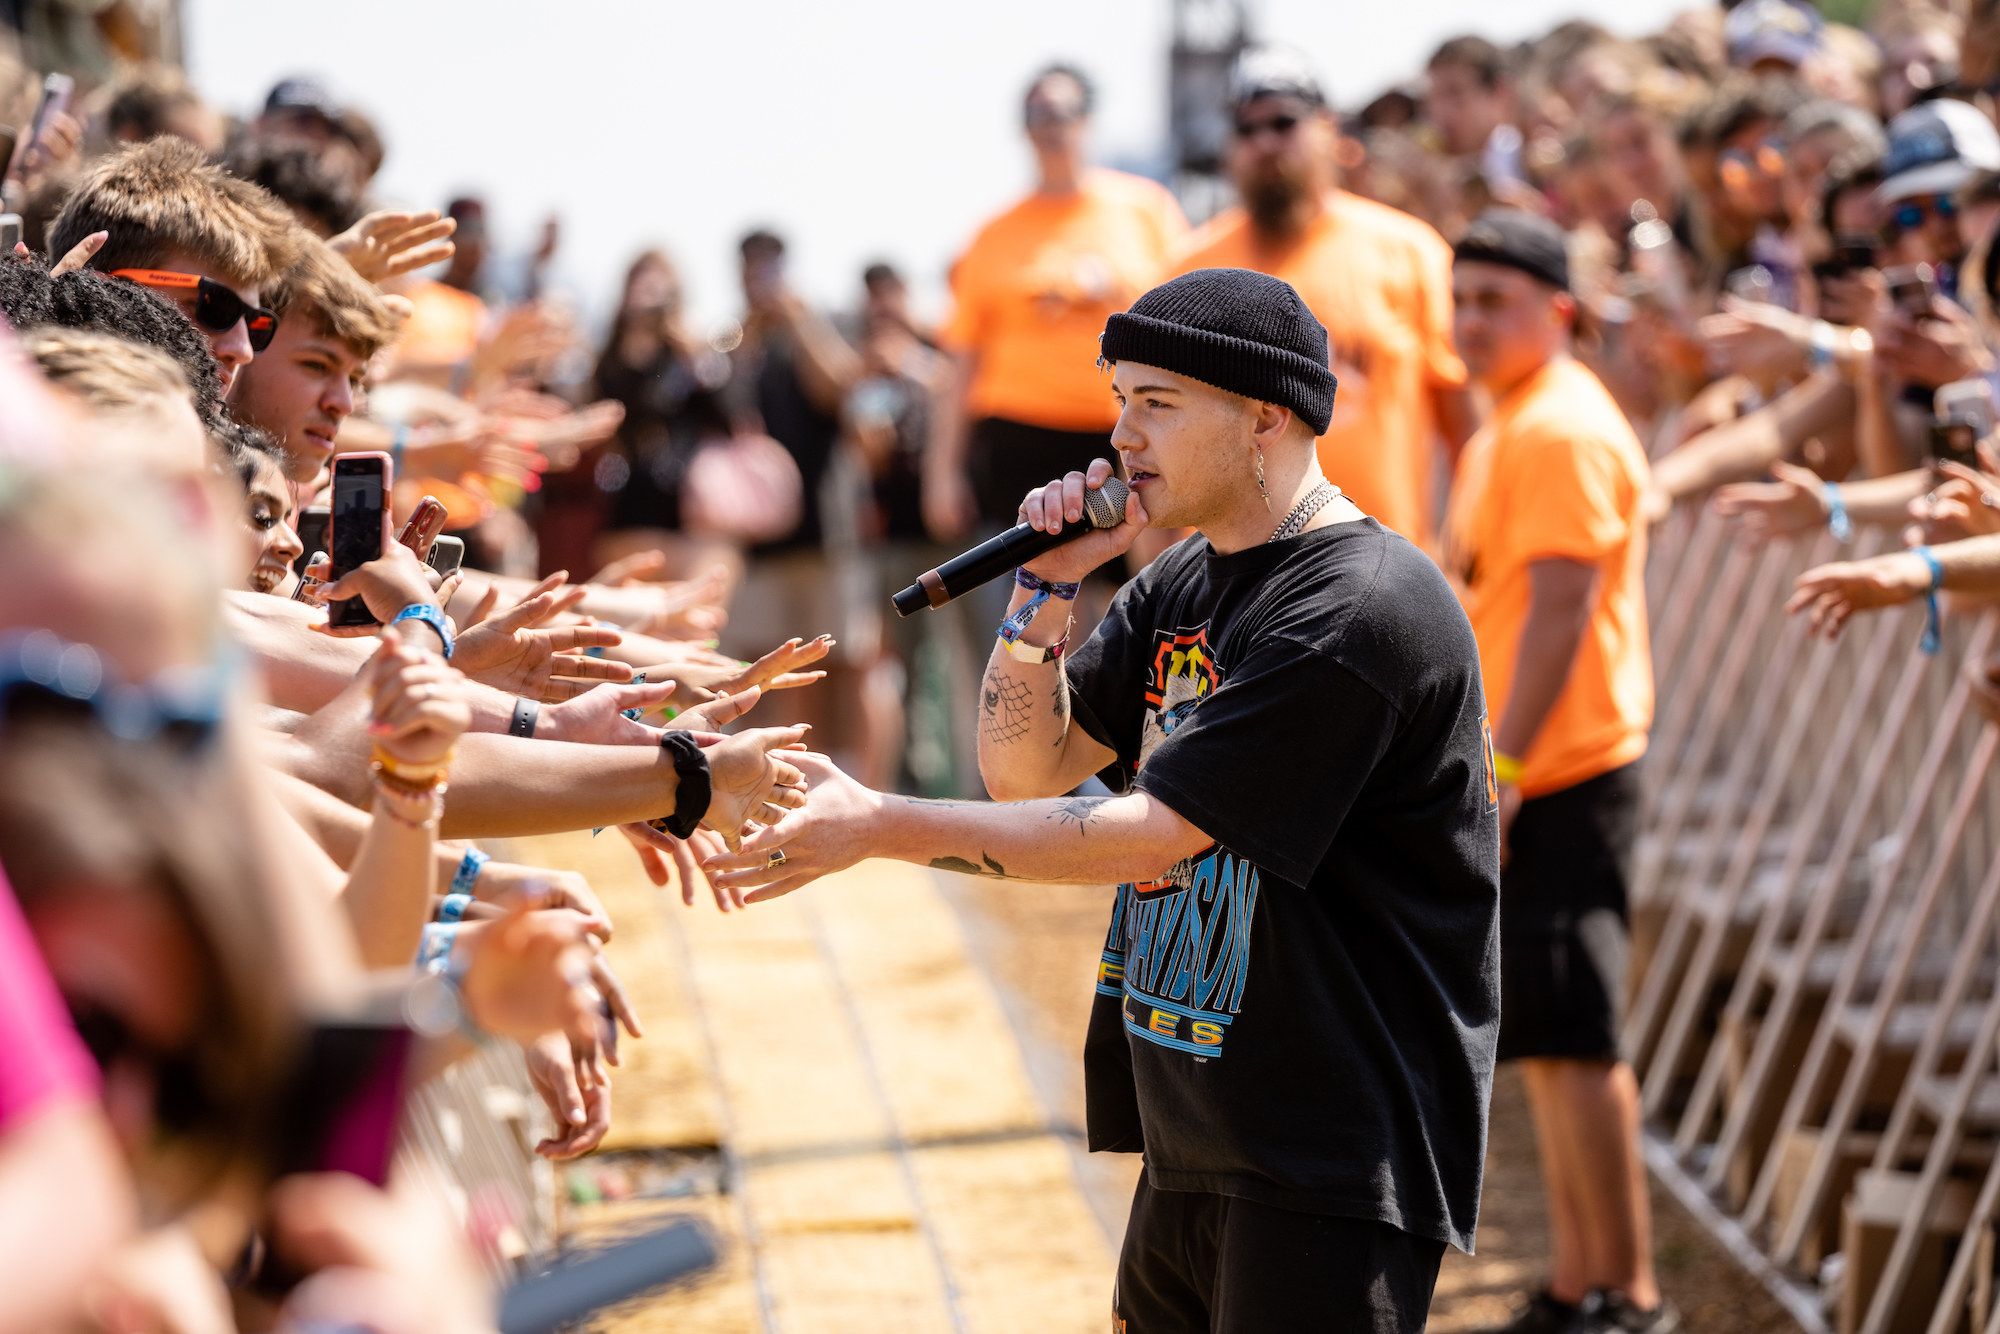 Musician Trevor Daniel shakes hands and sings as he moves through the crowd along the barricades at Lollapalooza.